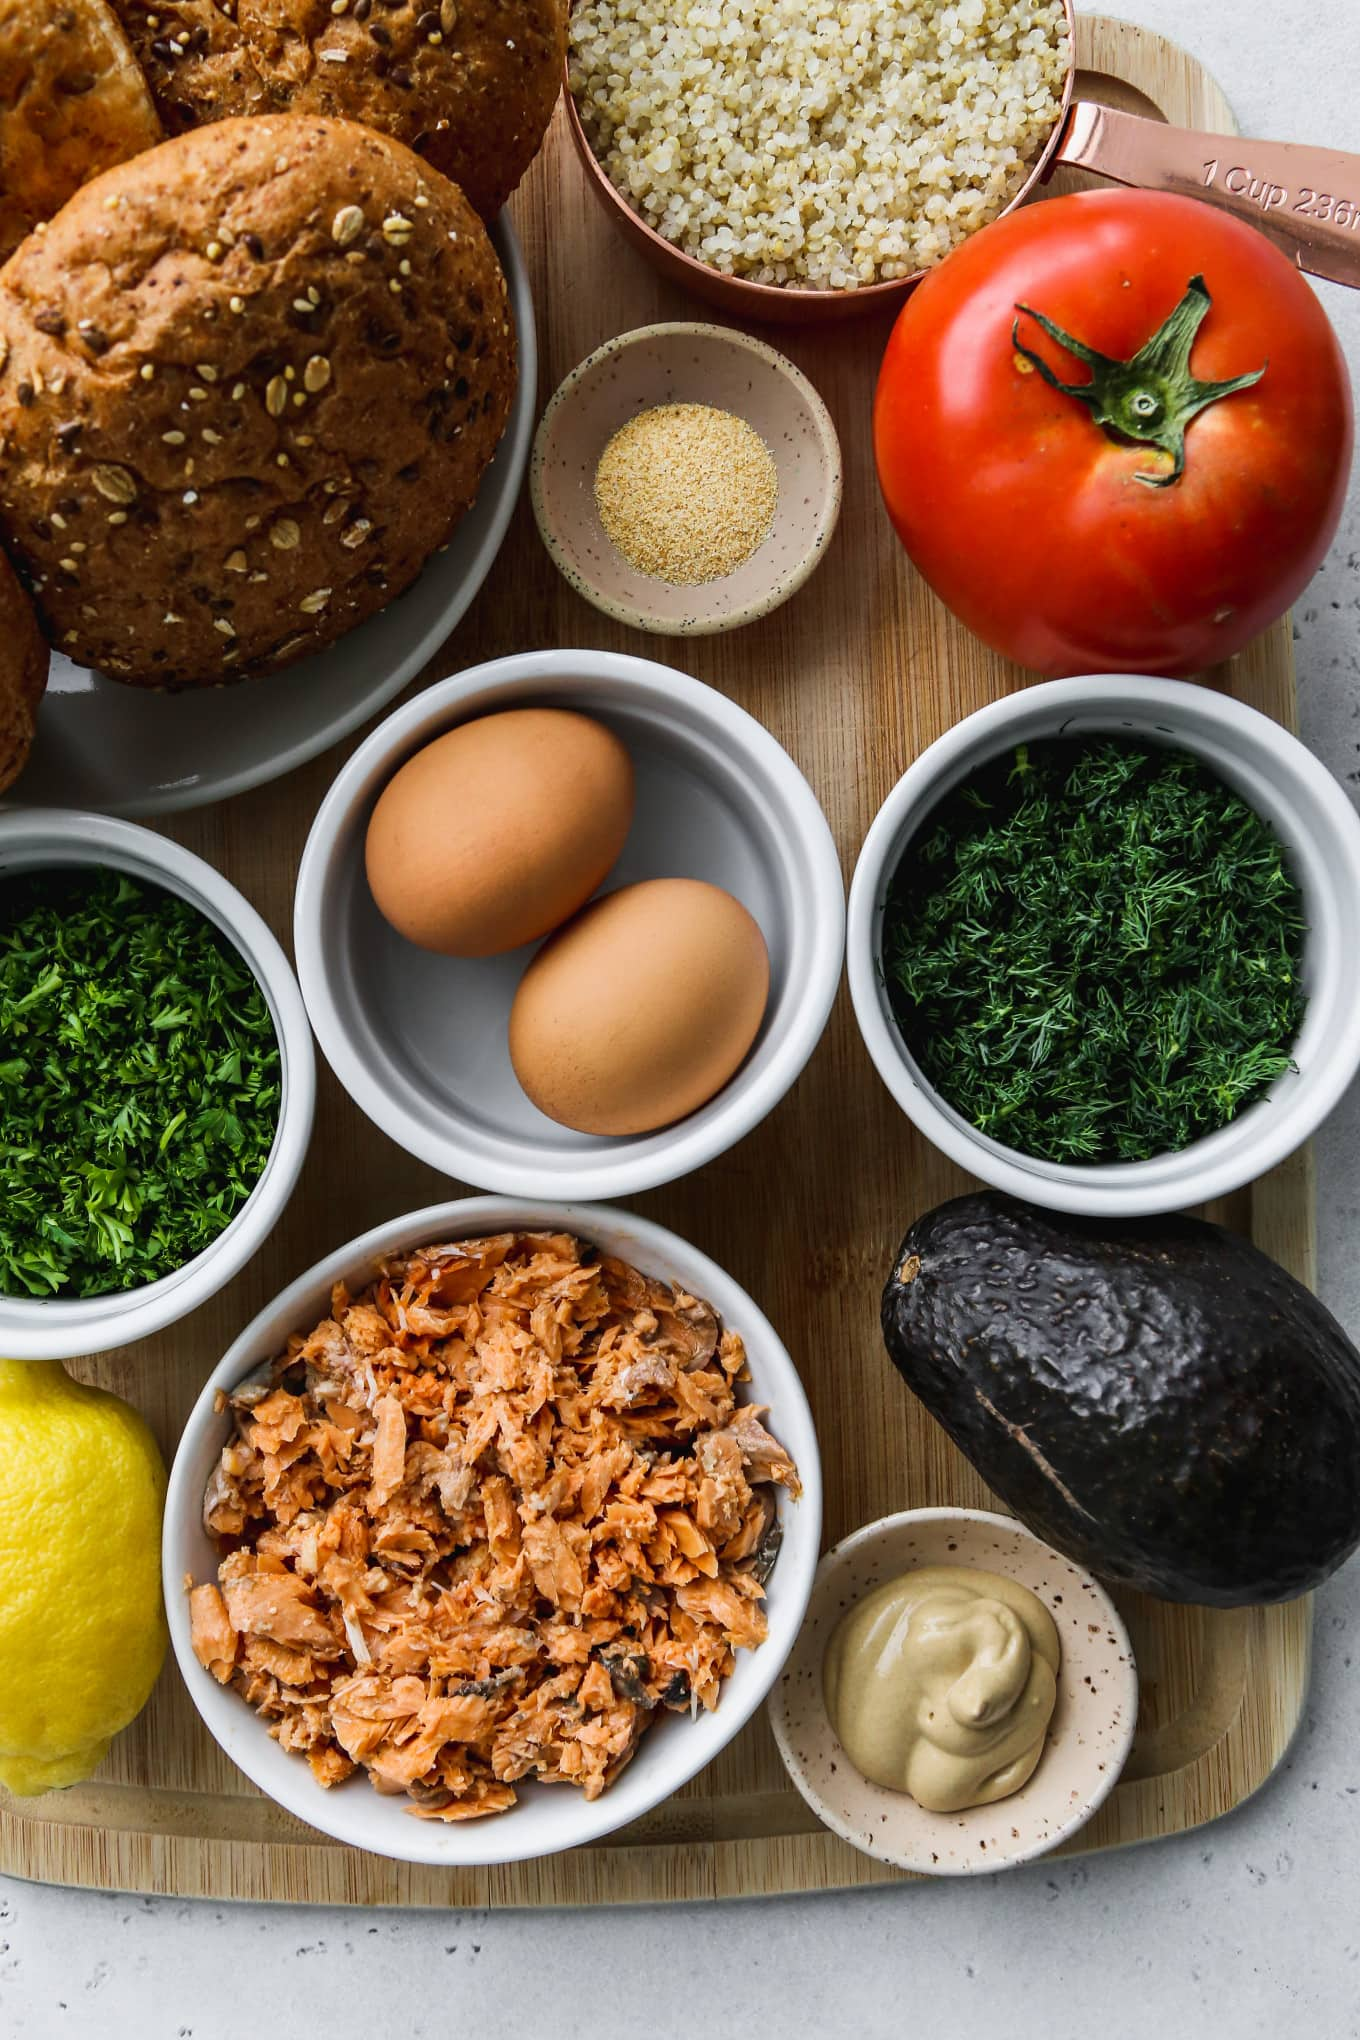 Overhead photo with small bowls of ingredients on top of a wooden cutting board.